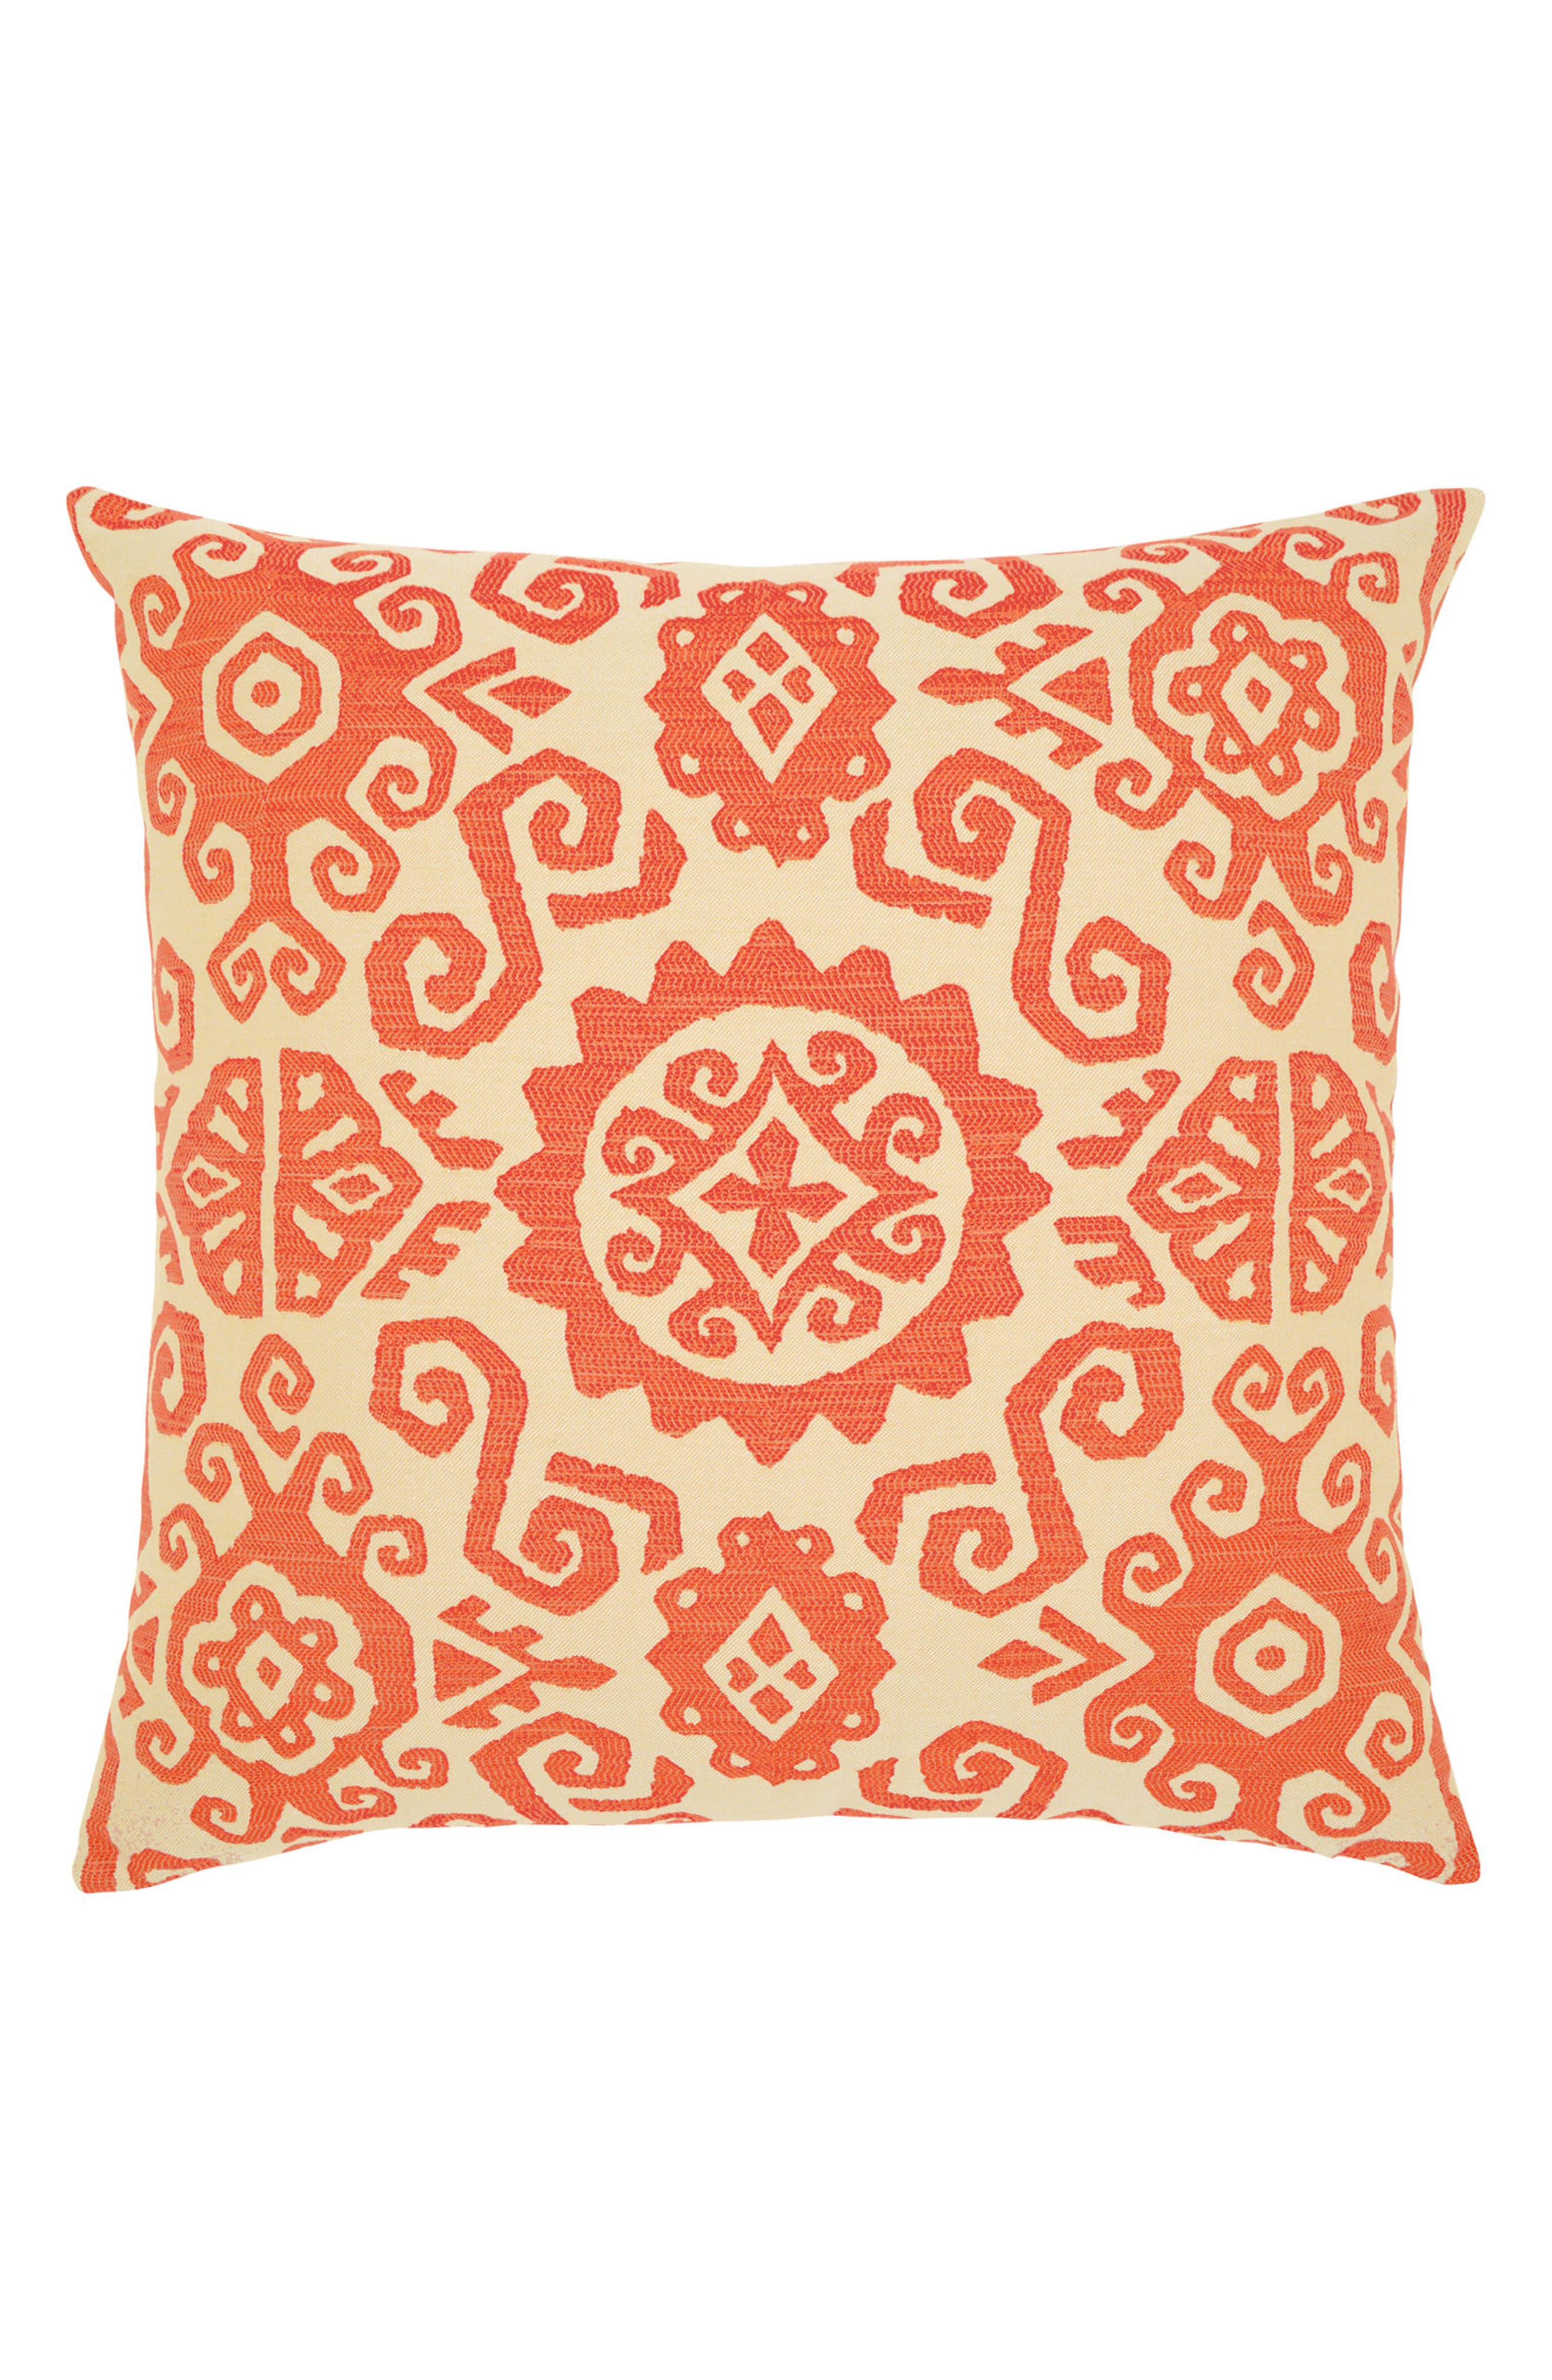 Main Image - Elaine Smith Coral Sun Indoor/Outdoor Accent Pillow